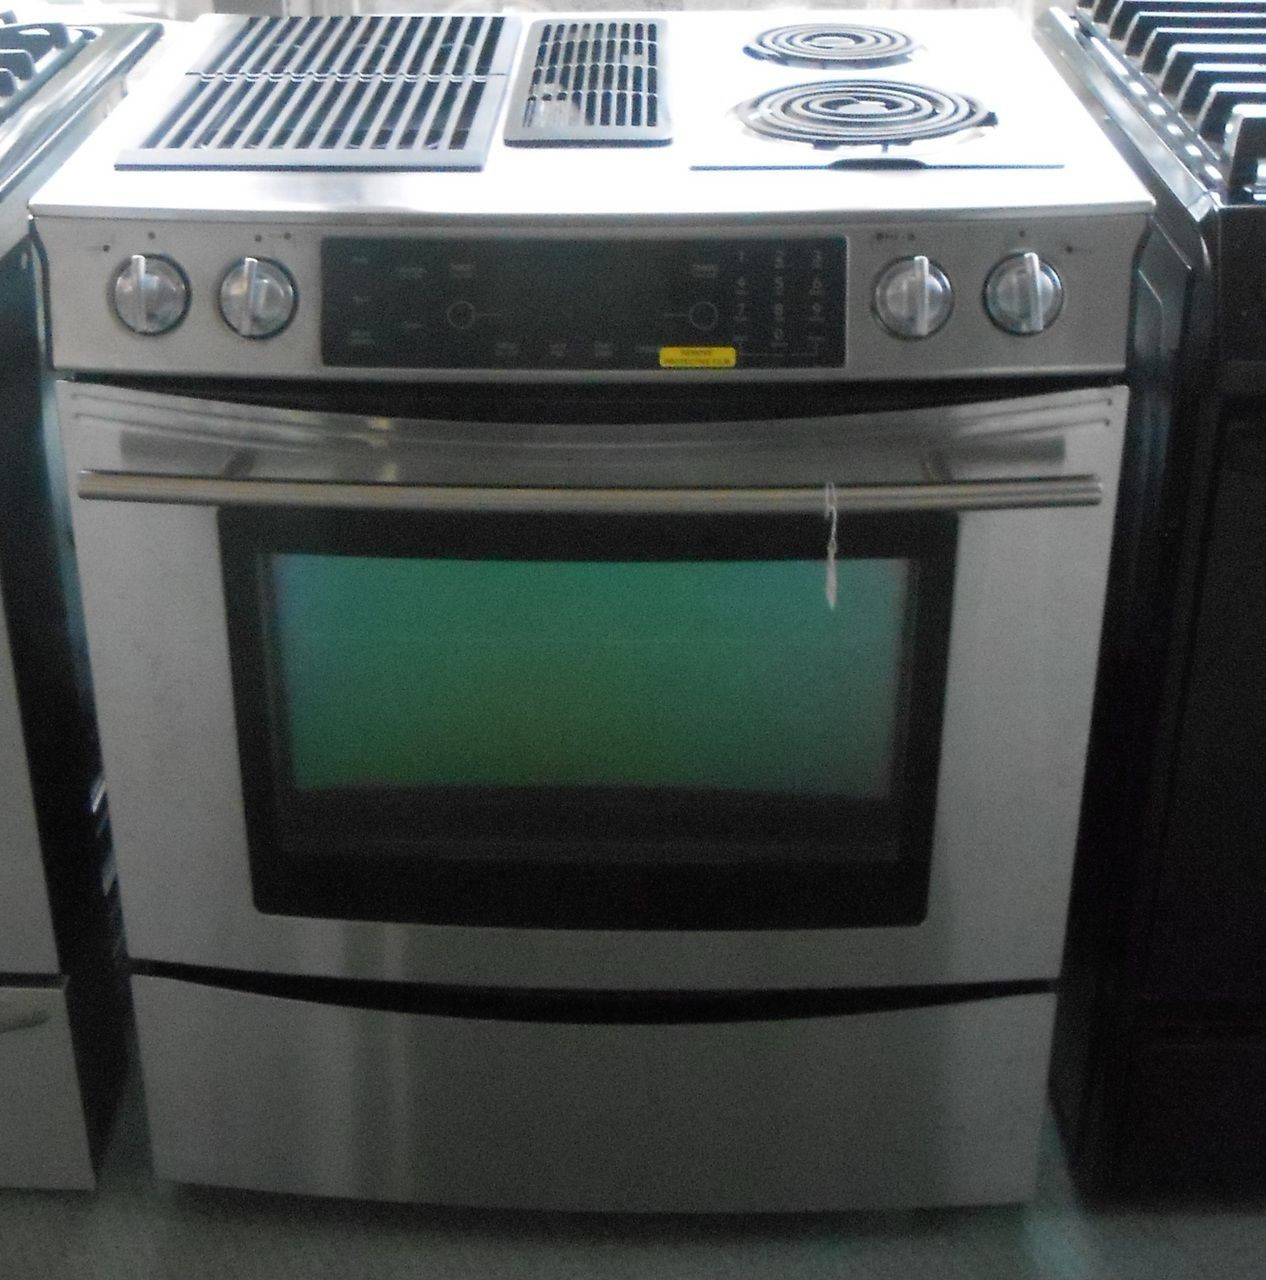 Appliance City Jenn Air 30 Inch Slide Electric Range